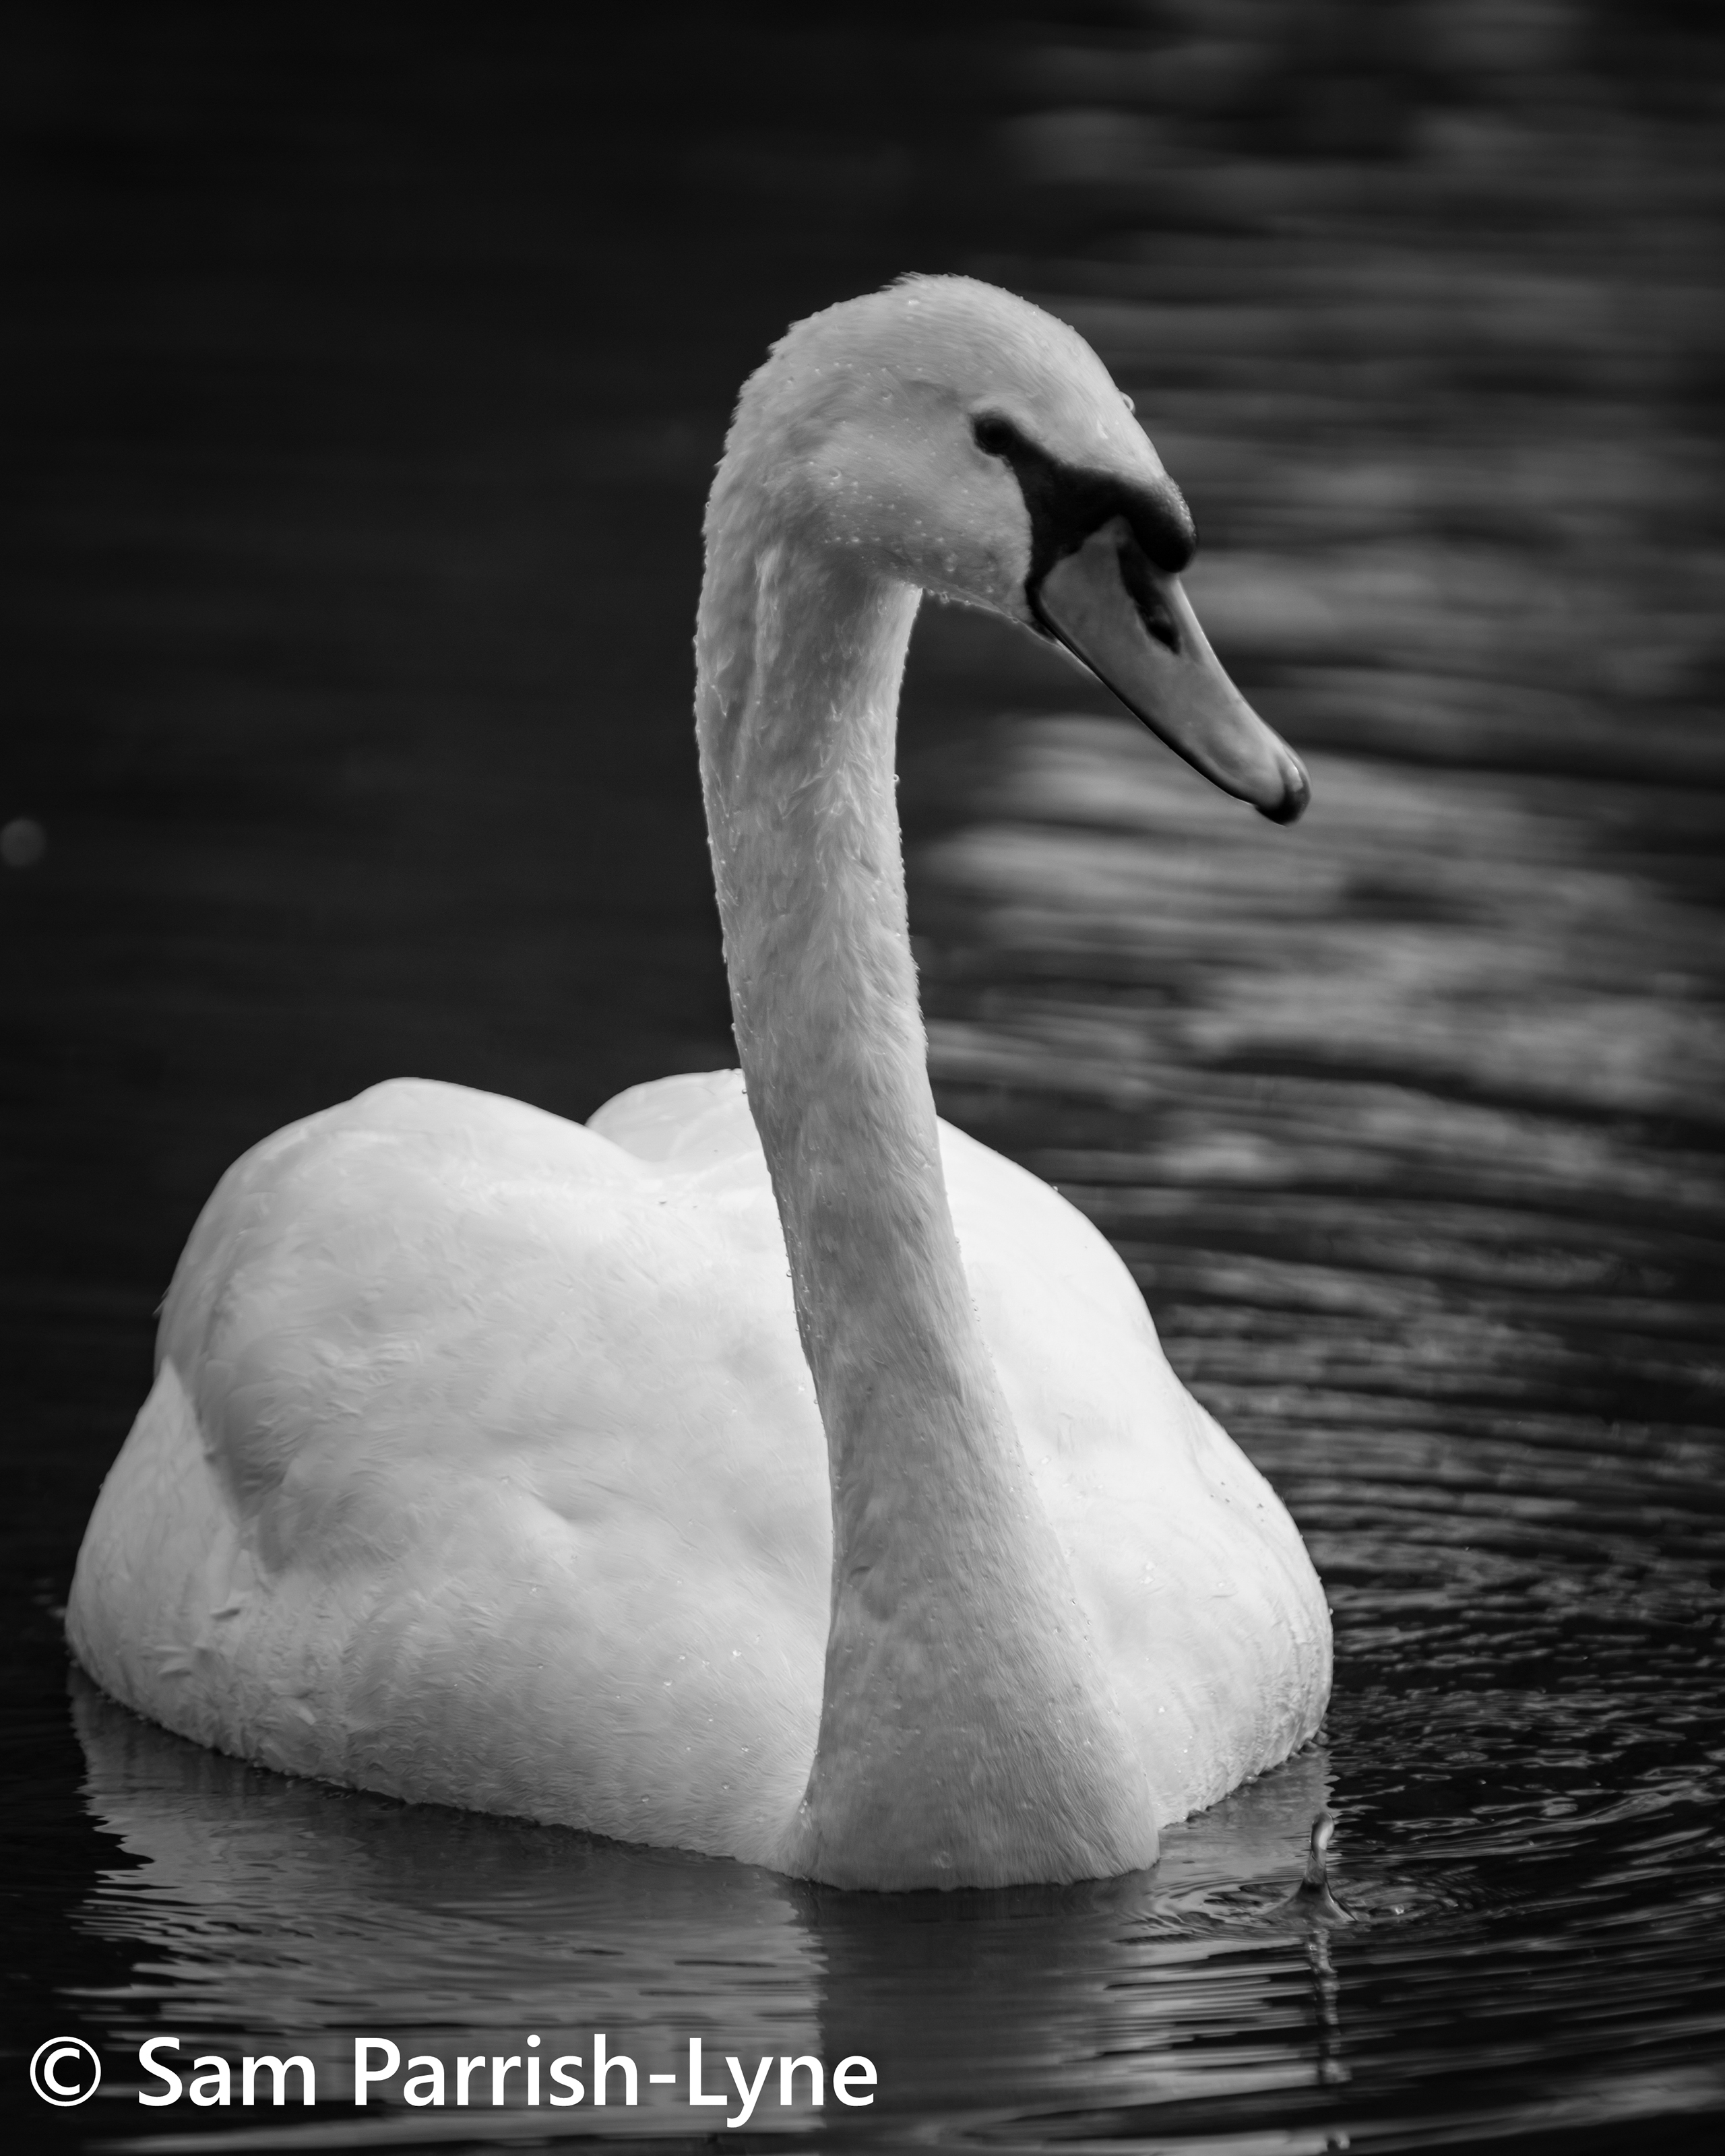 Swan, photo by Sam Parrish-Lyne.